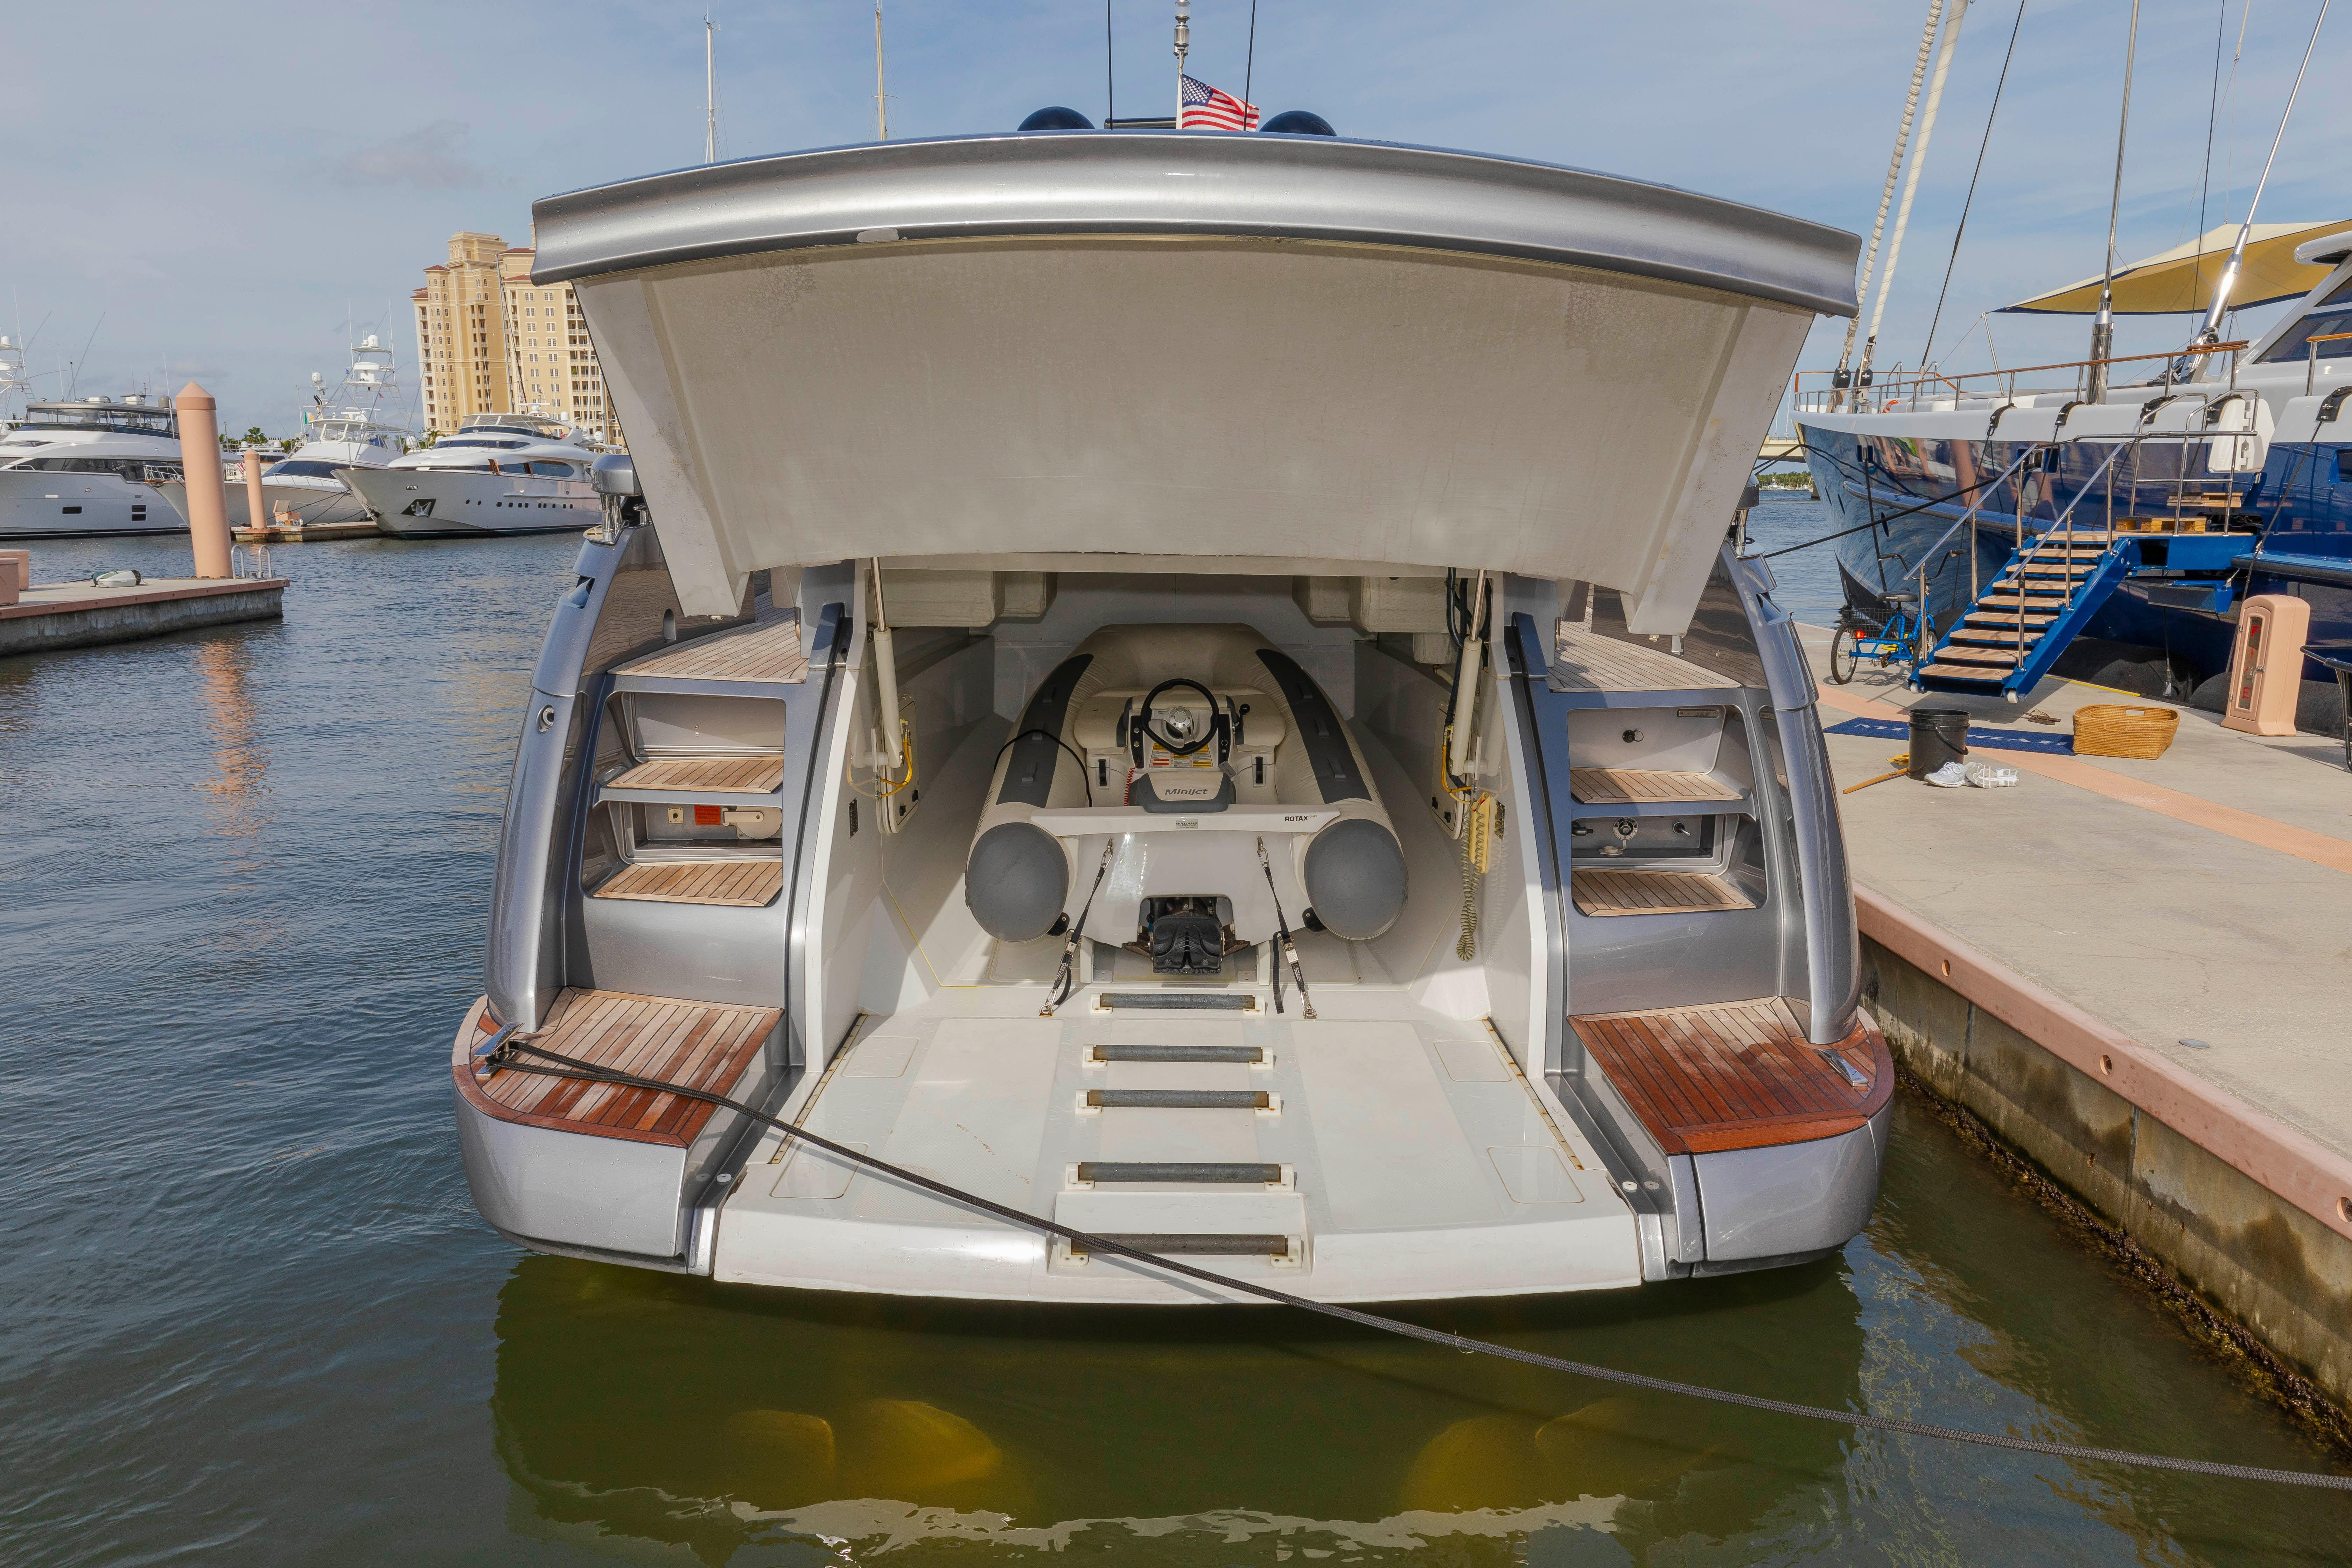 2016 Pershing 70 - Tender/ Garage